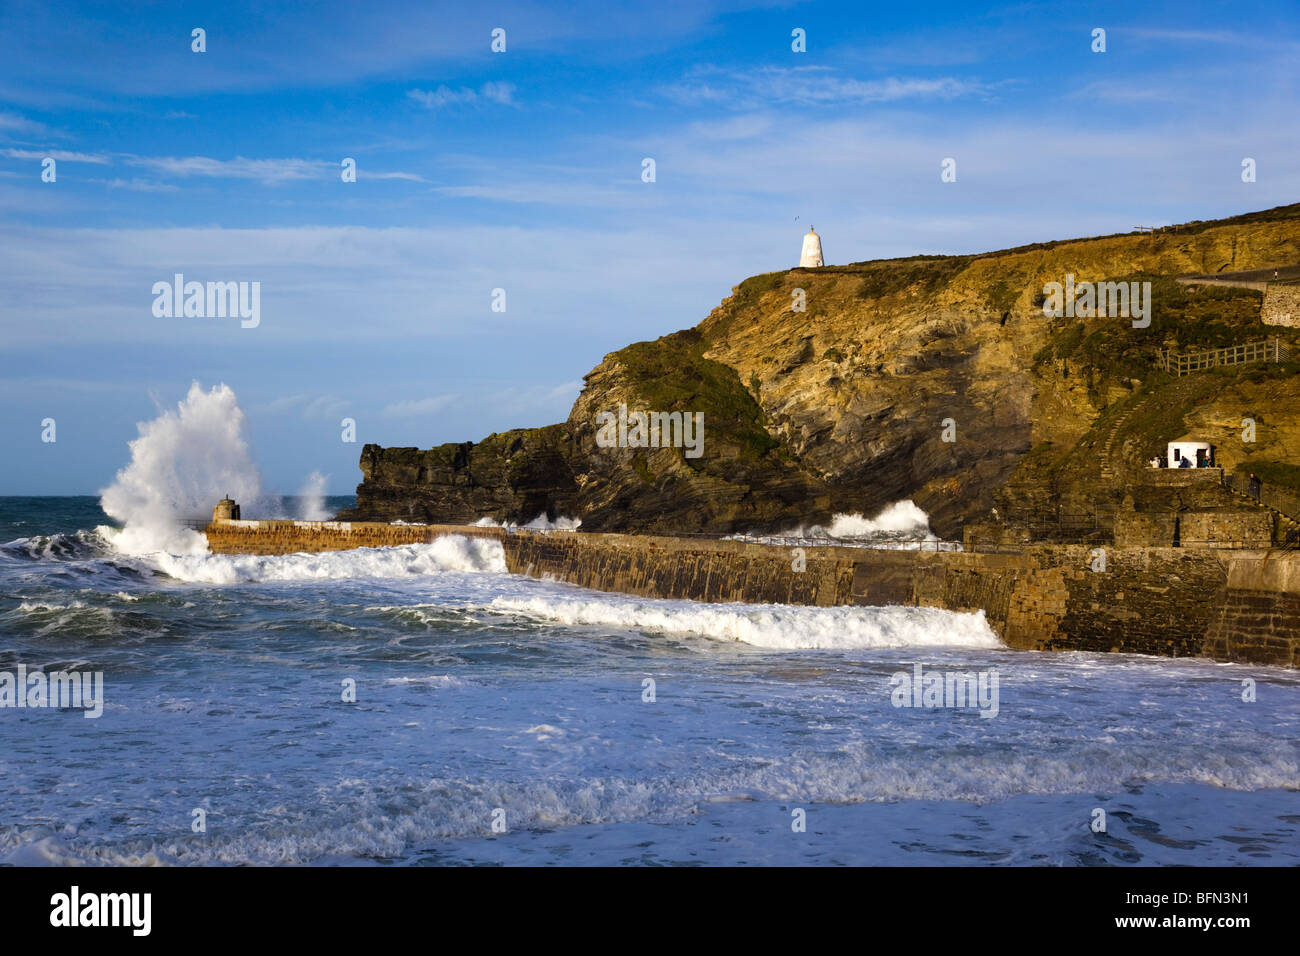 Portreath; waves break over the pier in a storm; Cornwall - Stock Image